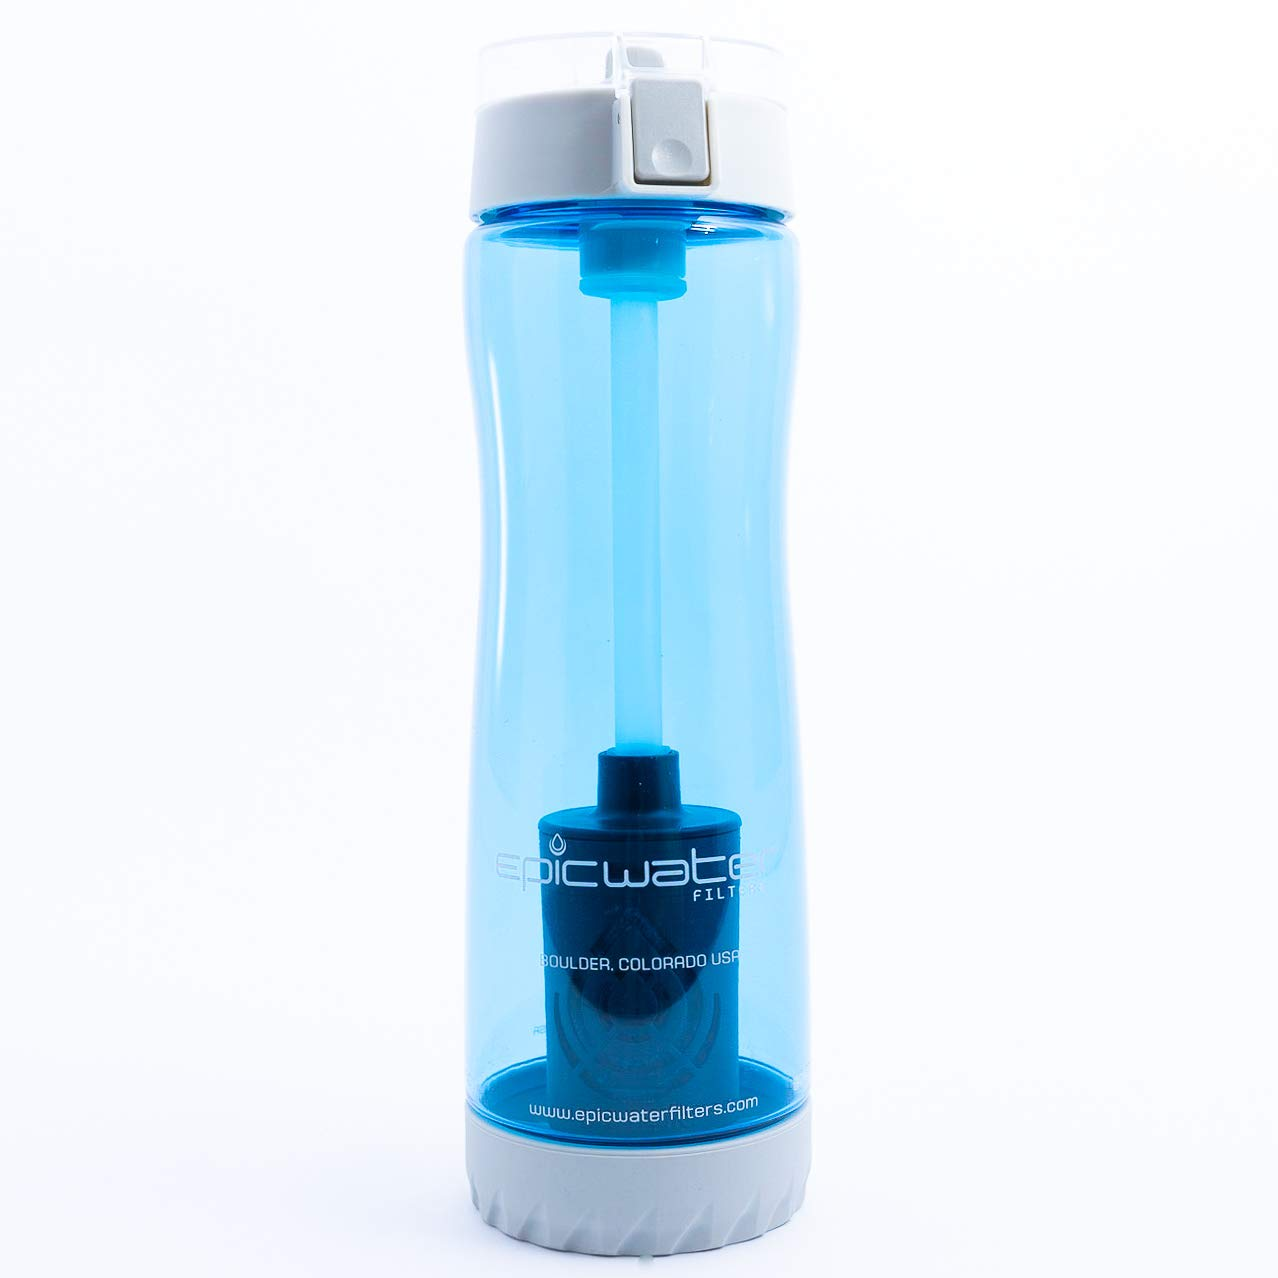 Eco-Tritan | Water Filtration Bottle | Blue | 25 oz 740 ml | 100 Percent BPA & BPS-Free | Includes 1 Urban Filter to Remove Lead, Cysts, PFA, Fluoride, Chromium 6 and More